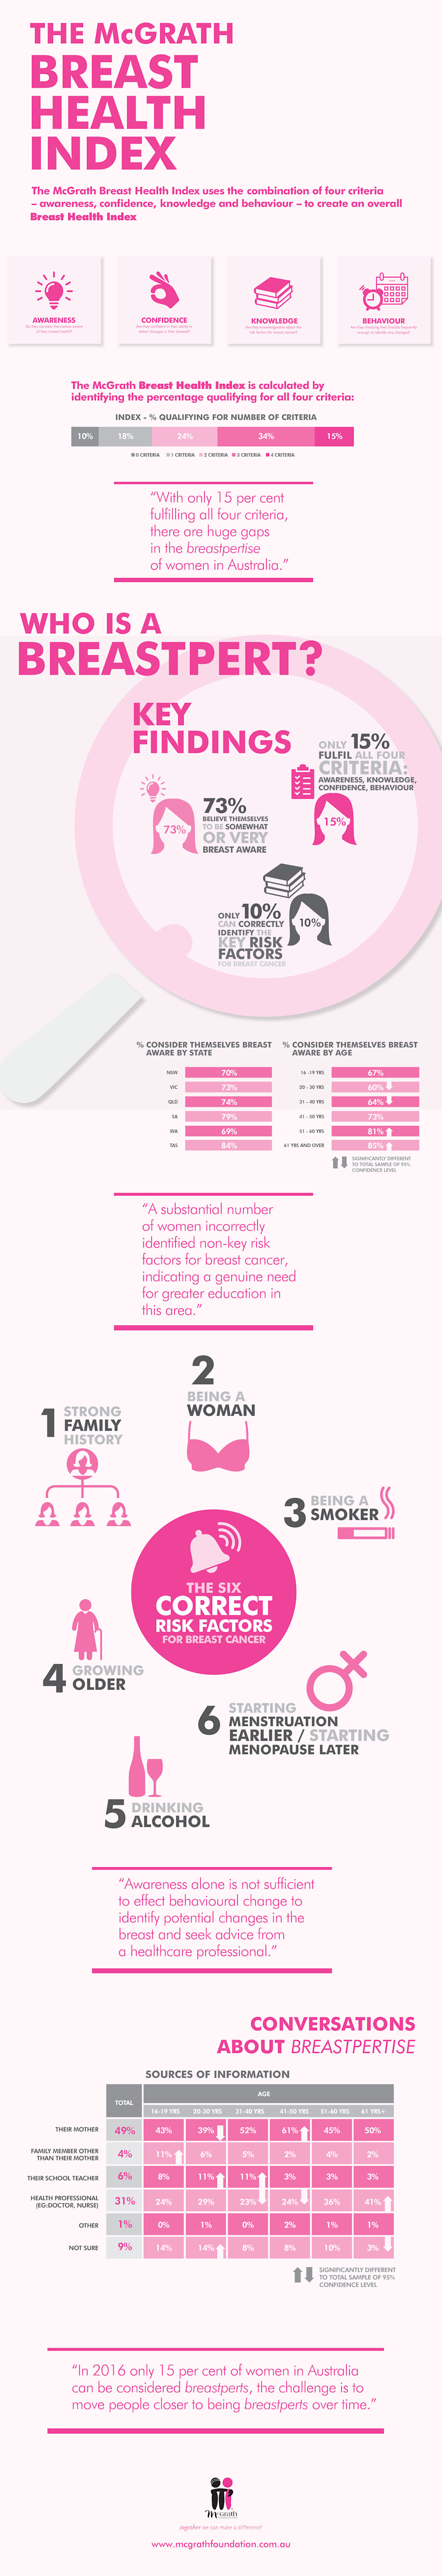 The first ever annual McGrath Breast Health Index, which measures levels of 'breastpertise' among women...